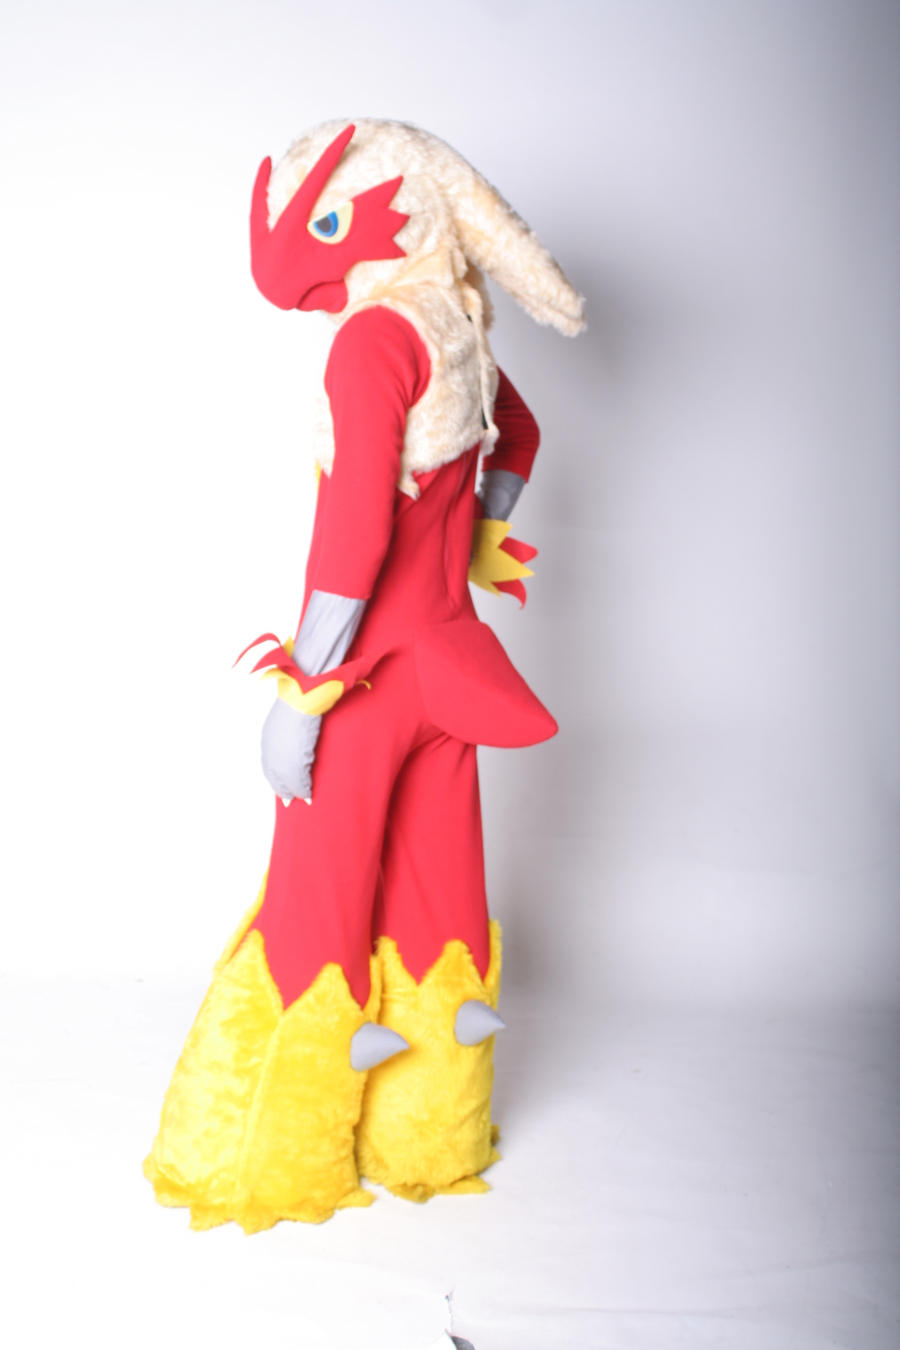 Blaziken by scatnix